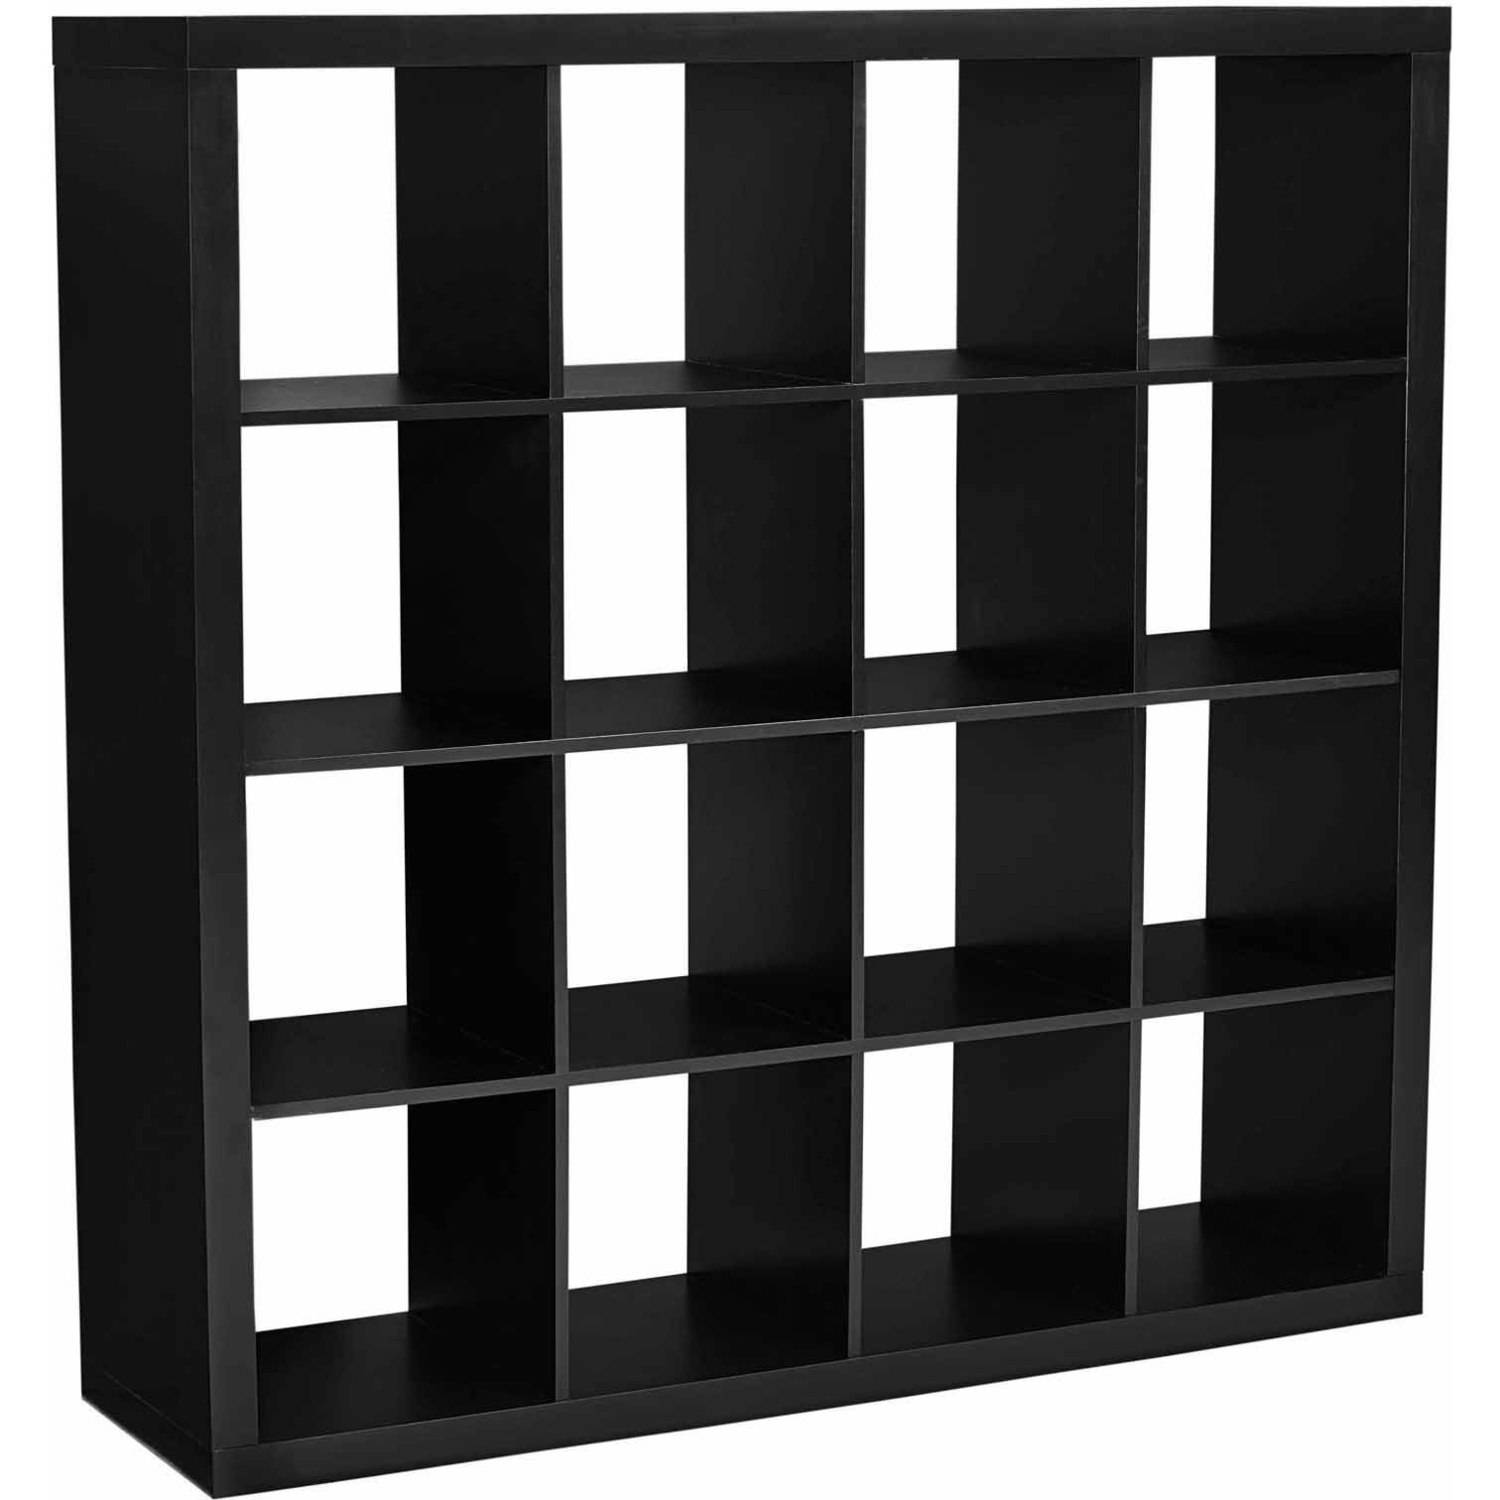 Elegant Better Homes And Gardens 16 Cube Organizer, Multiple Colors   Walmart.com